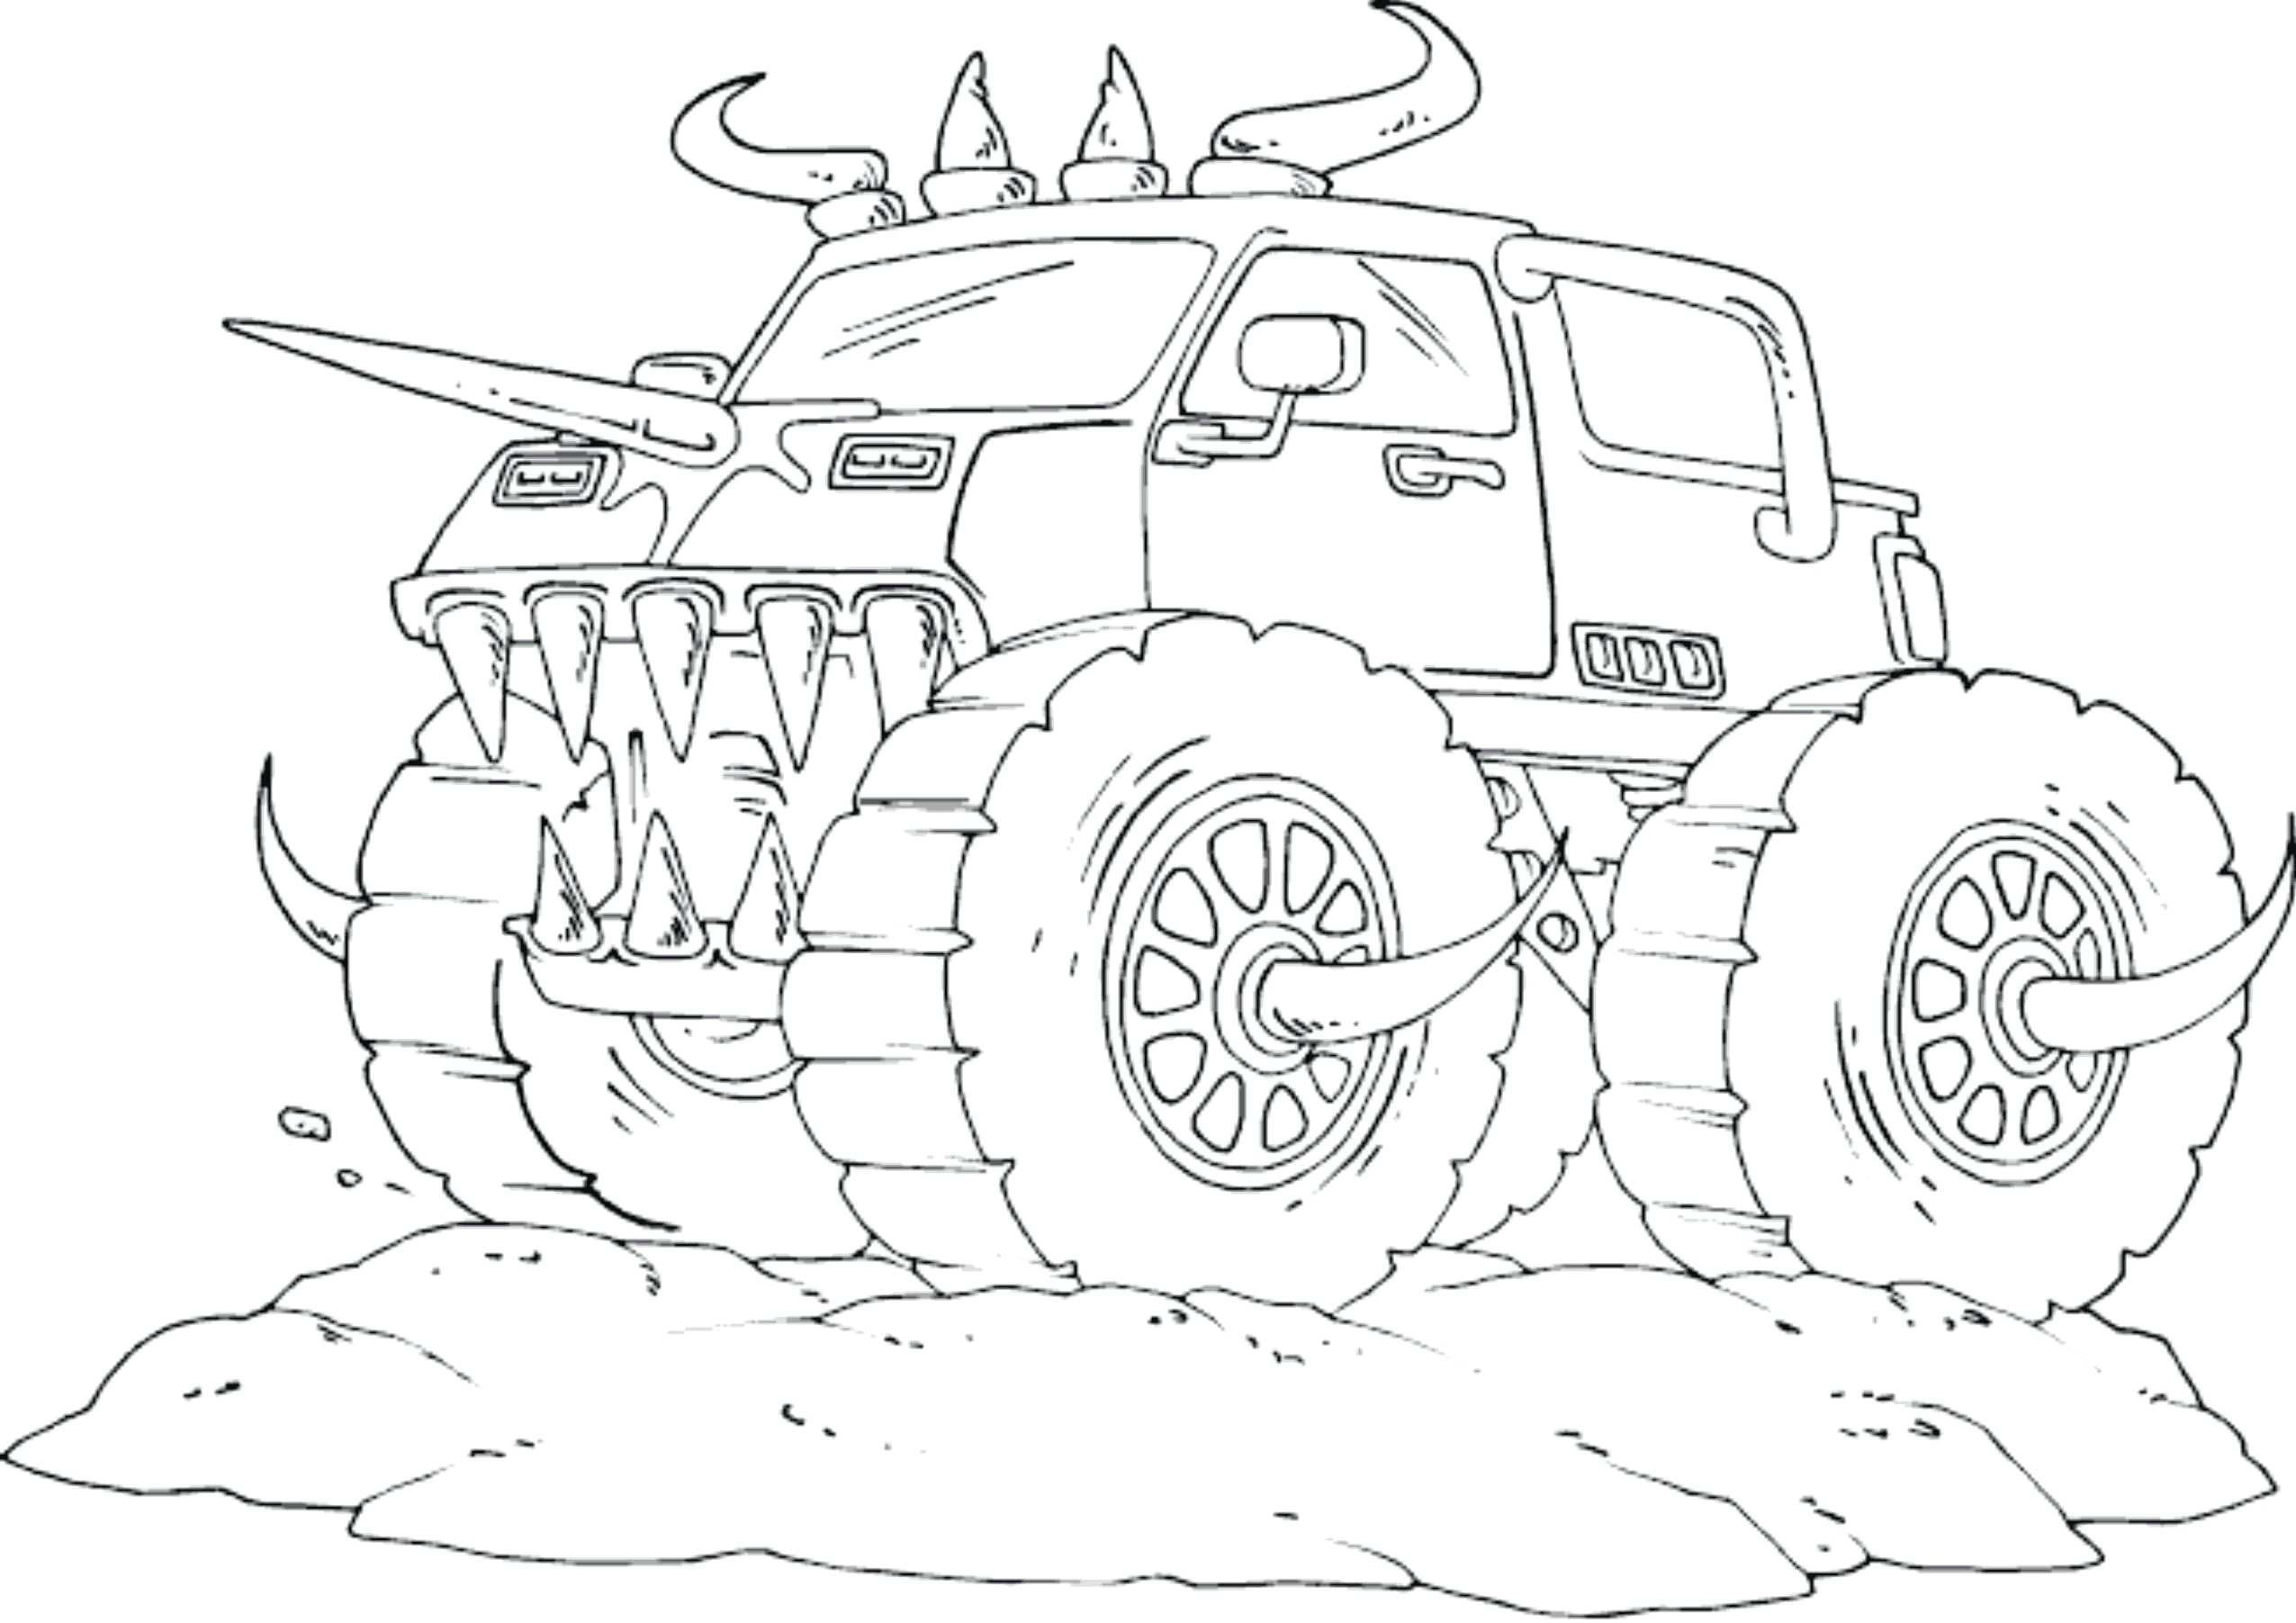 Printable Coloring Pages Monster Trucks  Gallery 16e - Free For kids